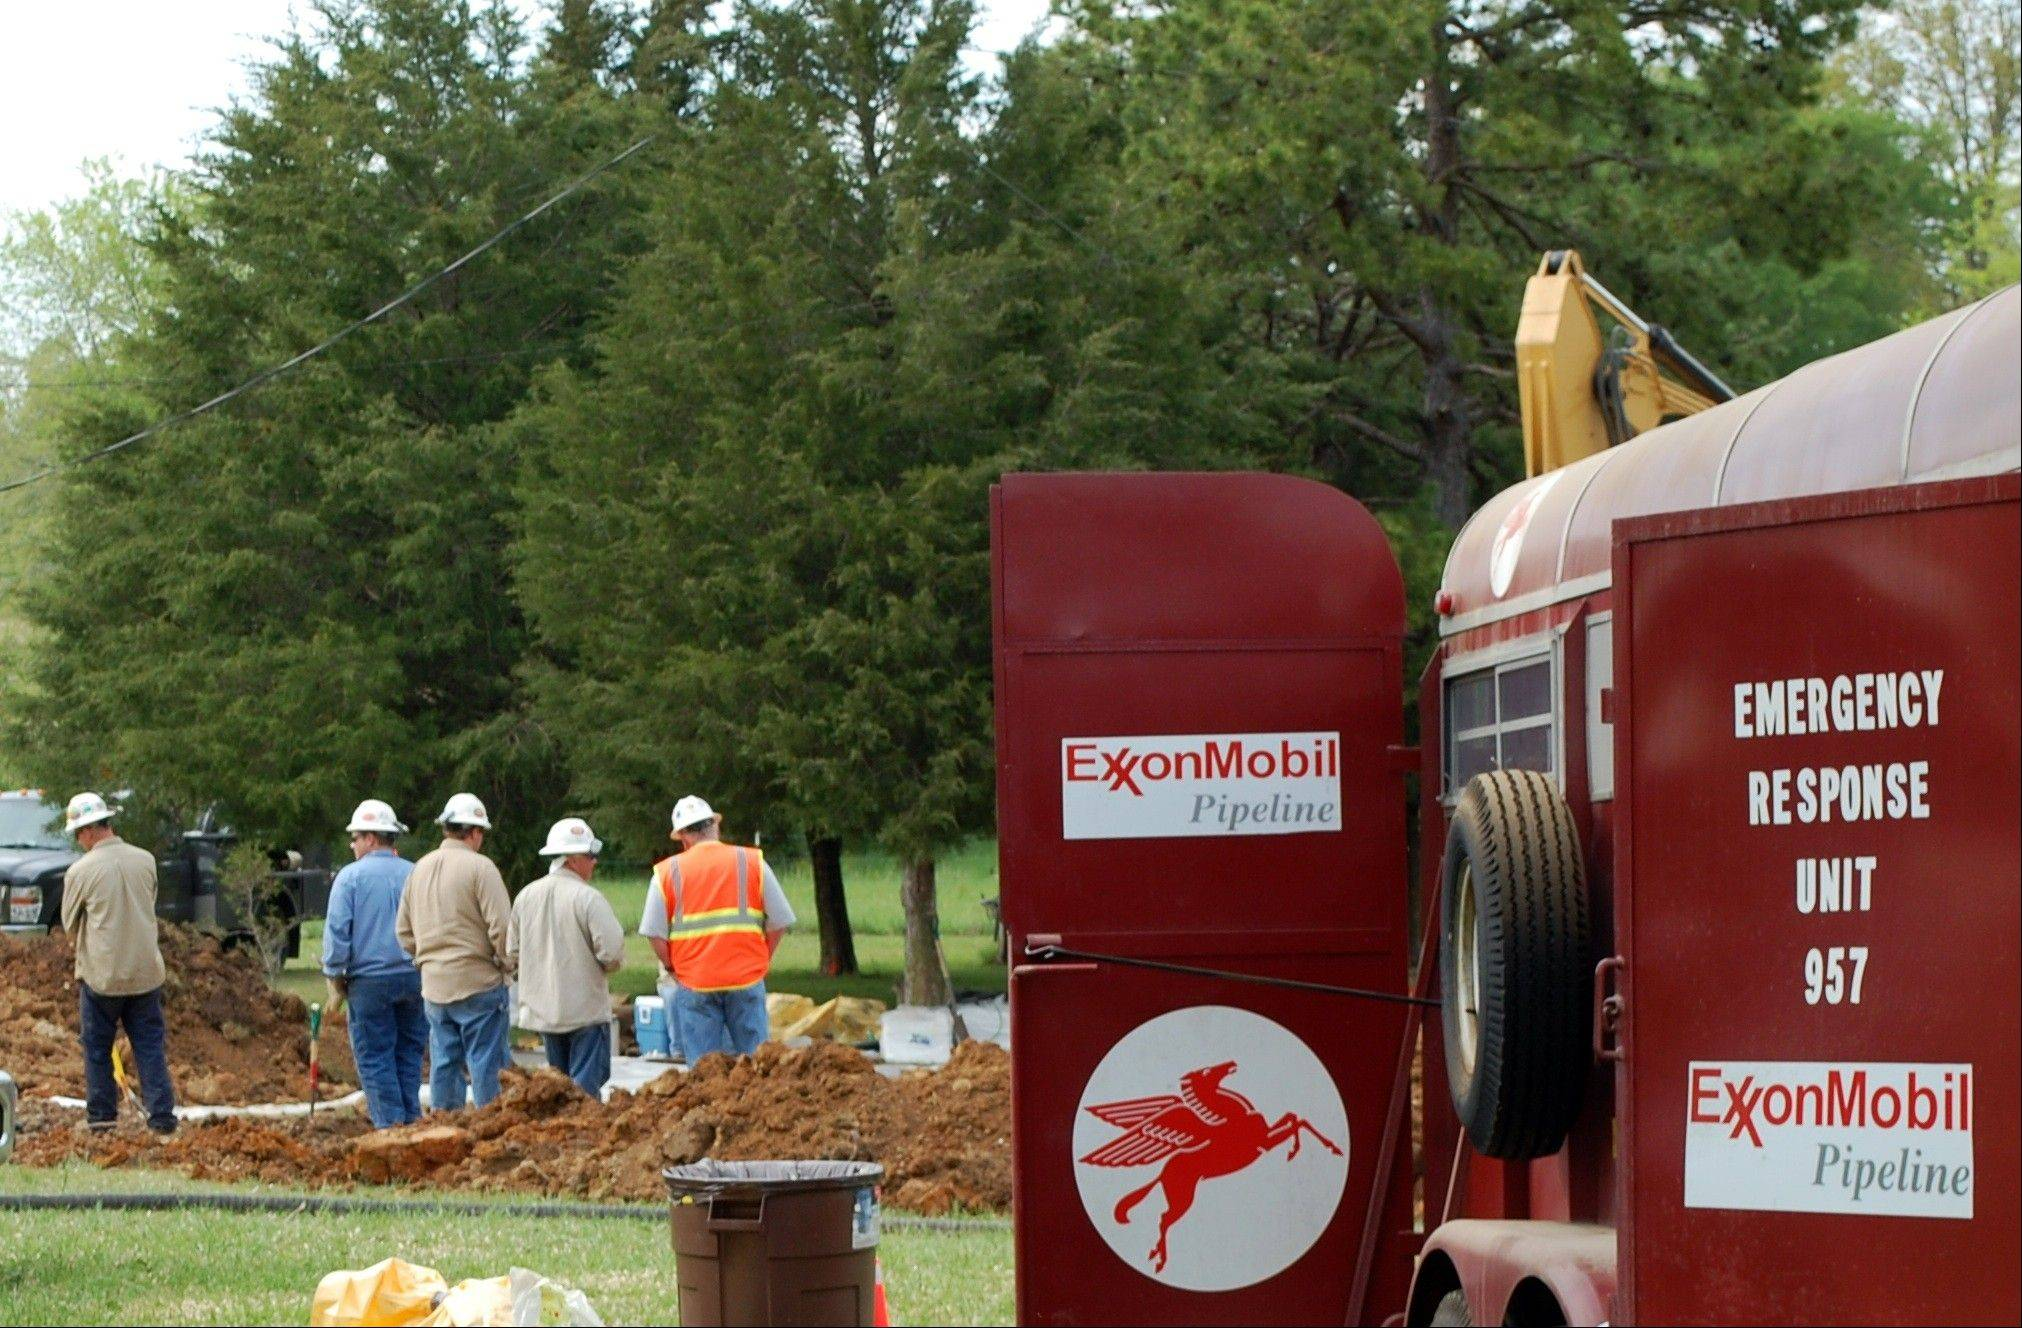 This Wednesday, May 1, 2013, photo provided by Ron Smith shows crew working at an oil leak site near Doniphan, Mo. ExxonMobil officials say cleanup is nearly complete after an oil leak from the Pegasus pipeline spilled about 42 gallons of crude - roughly one barrell - into the yard of a home.